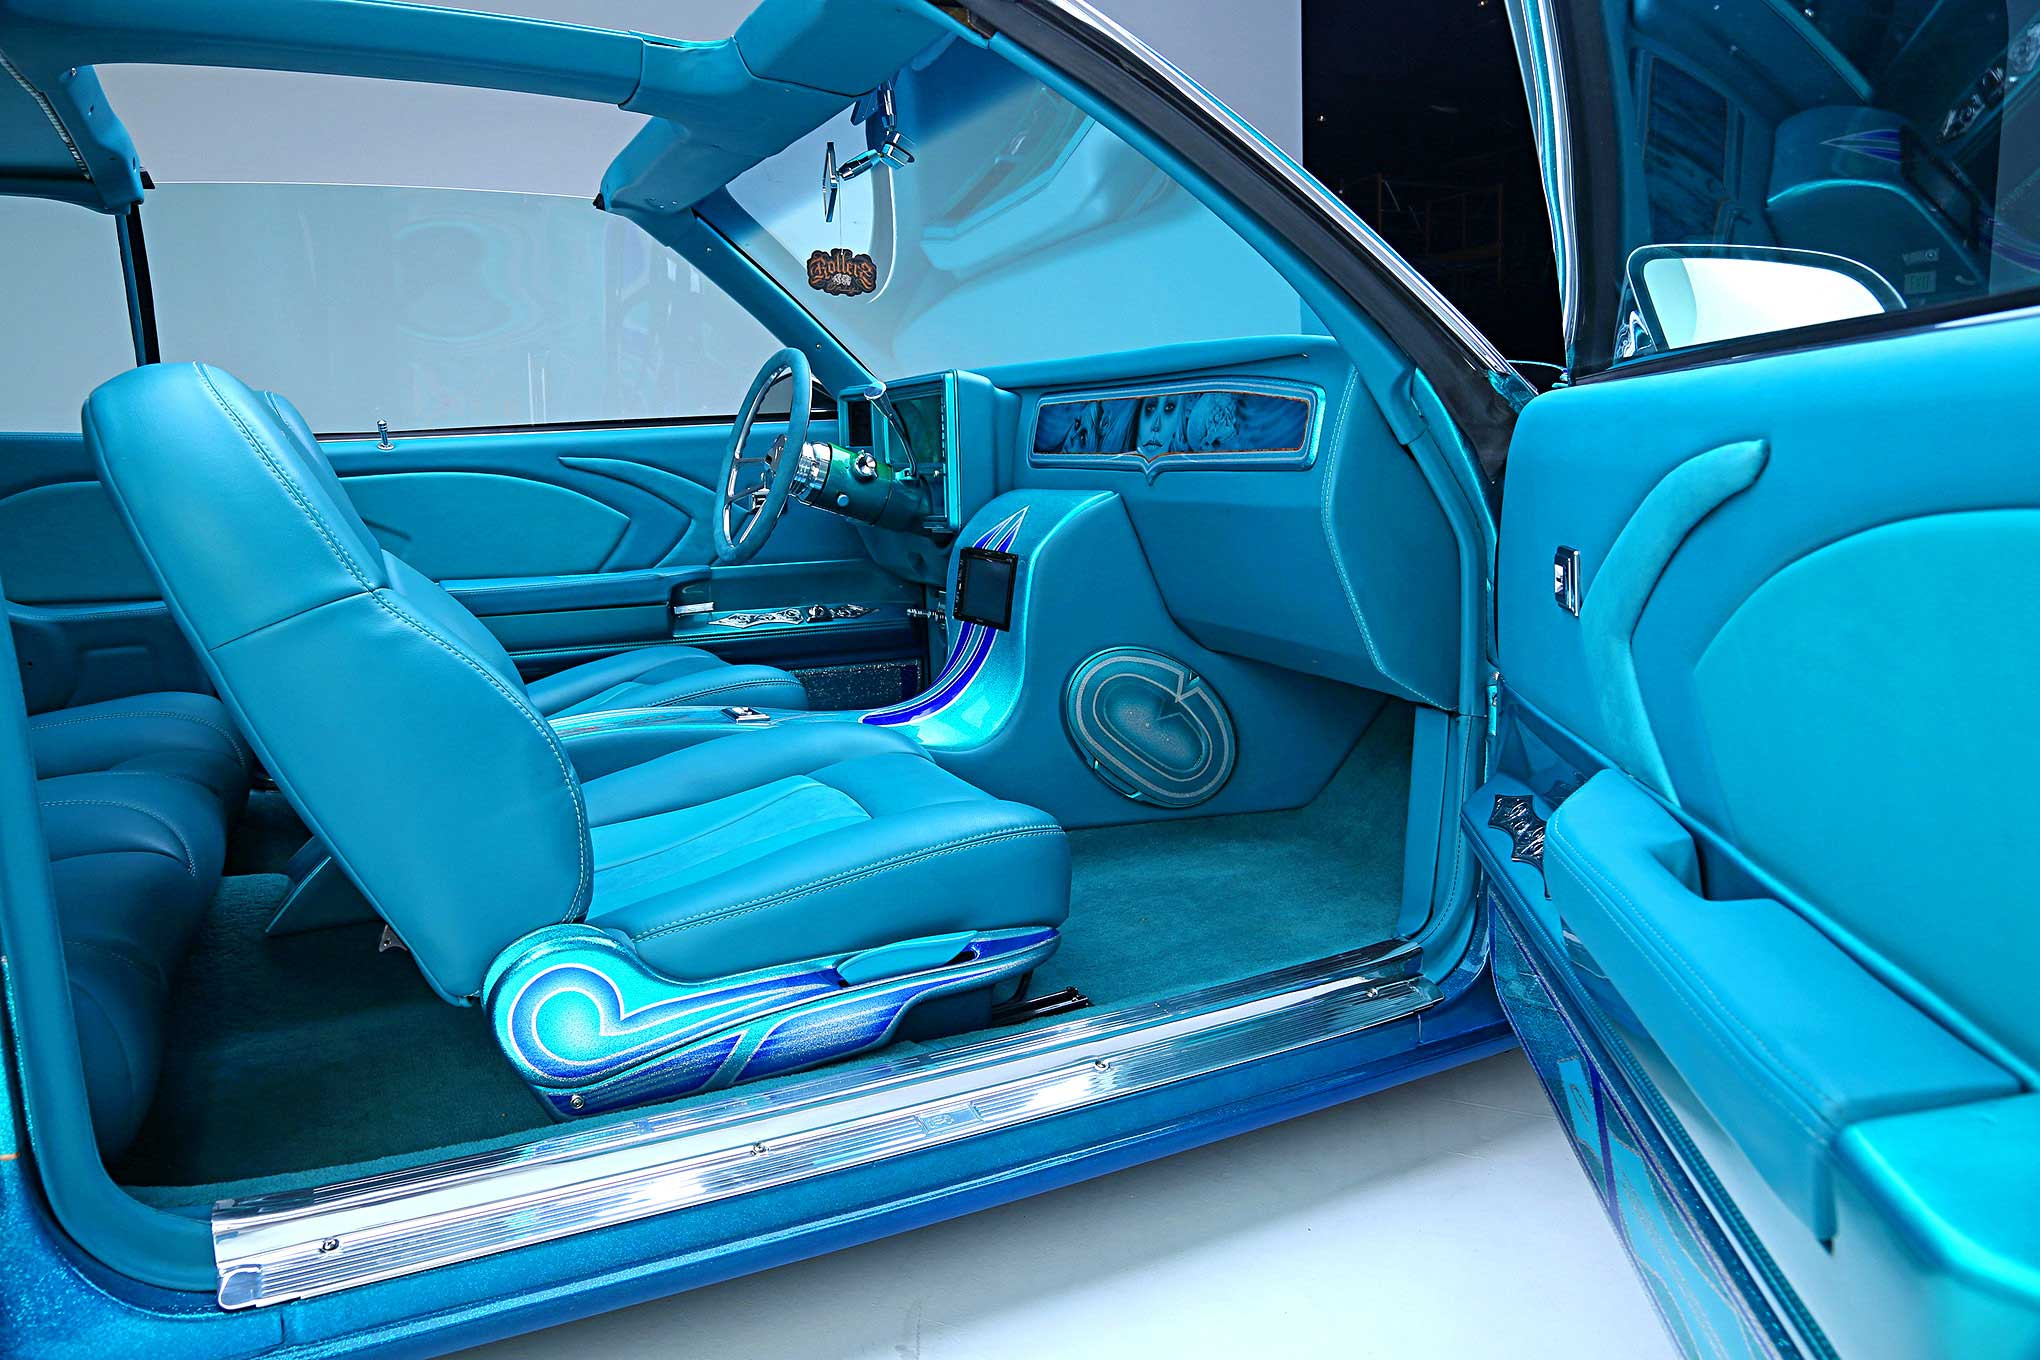 1979 Chevrolet Monte Carlo Teal Leather And Suede Interior Lowrider